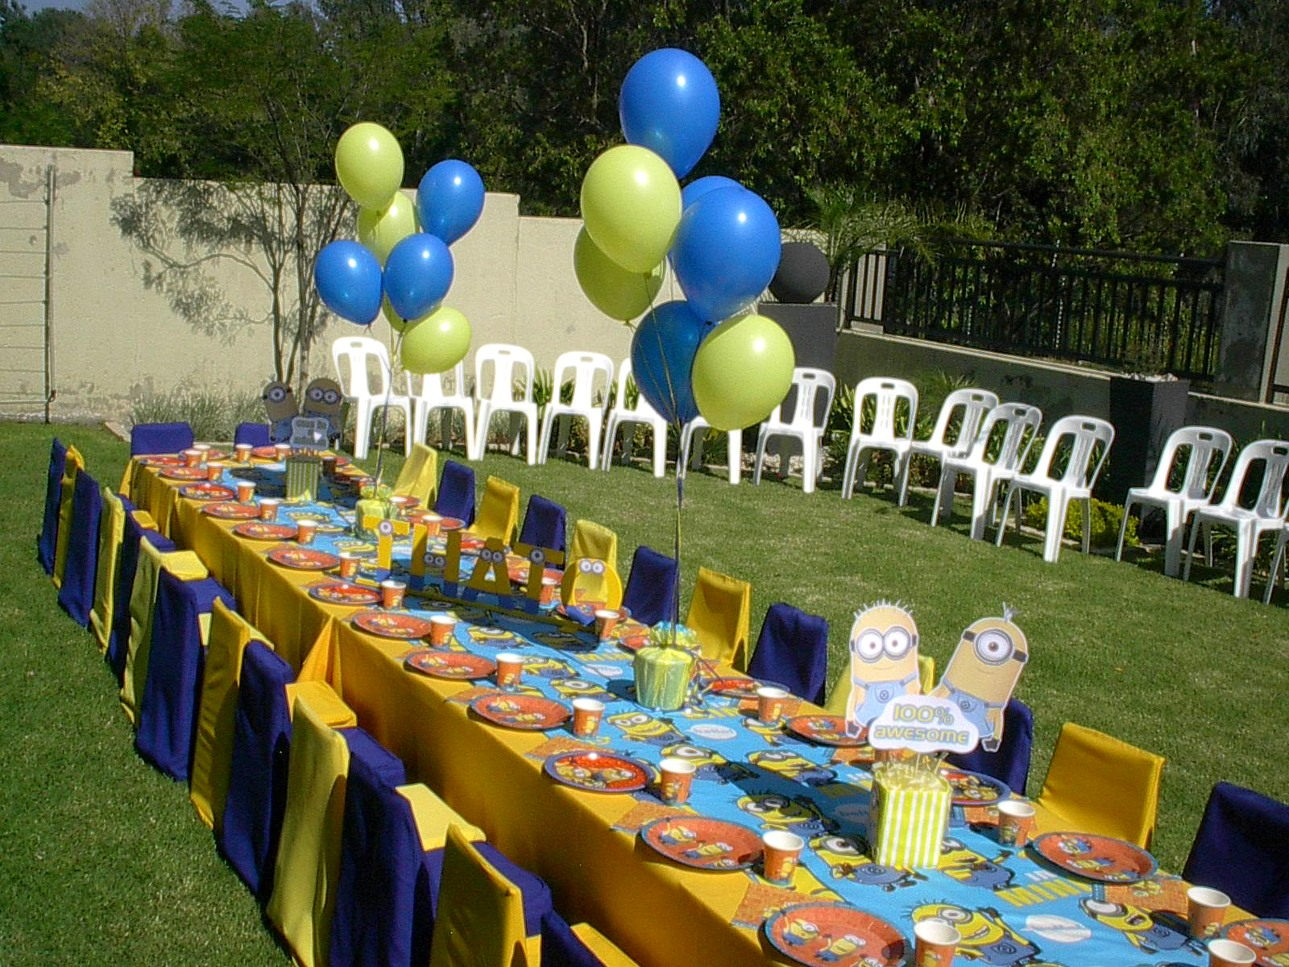 Minions Sweet Table and Decor  Hedgehog LaneThemed Party